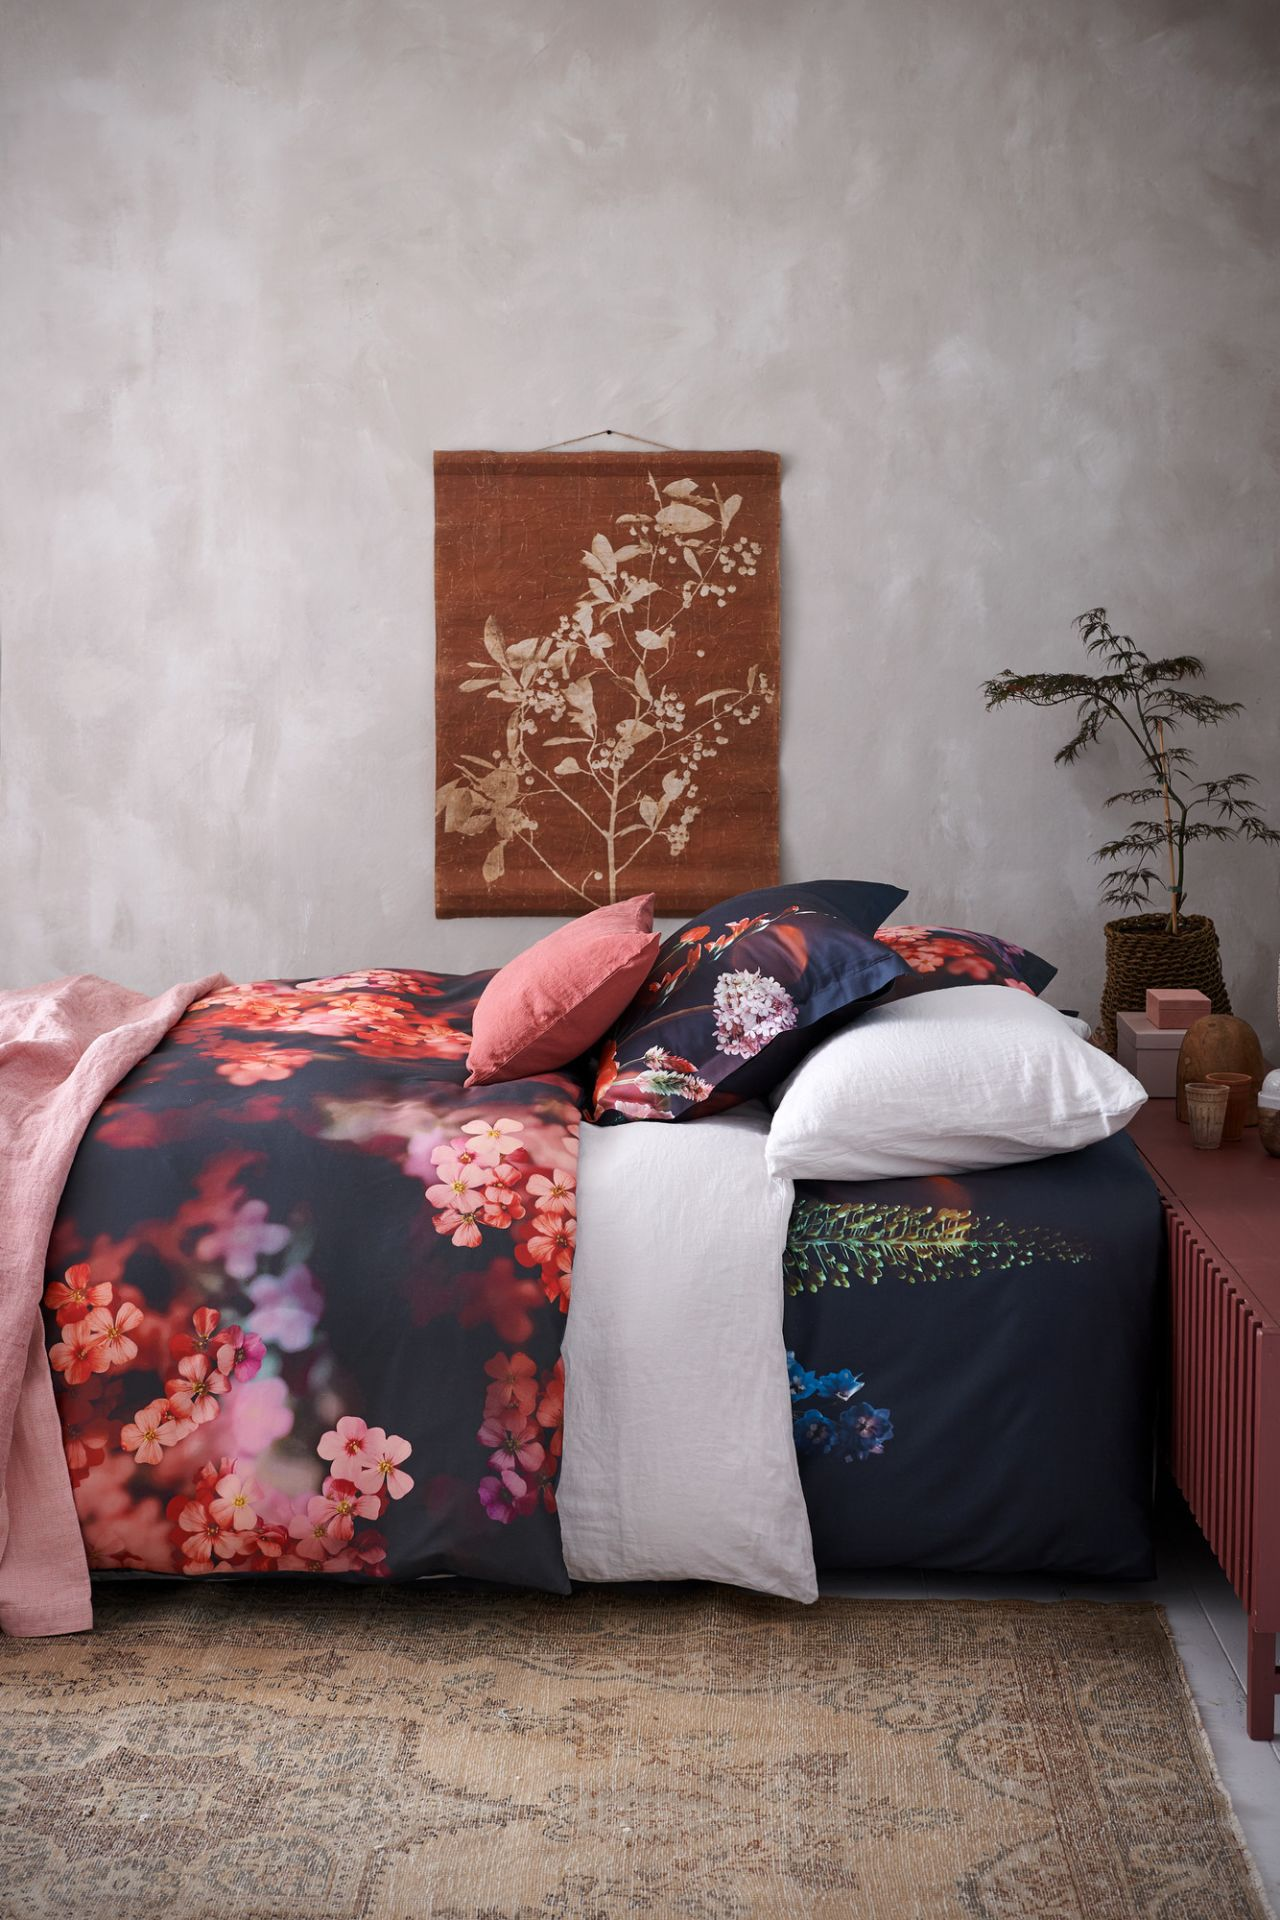 VanDyck bedtextiel Fascination 000 Multi, Bedazzled, Purity 79 169, 442, Pure 11 140 Faded pink bij Slaapkenner Lute in Limmen